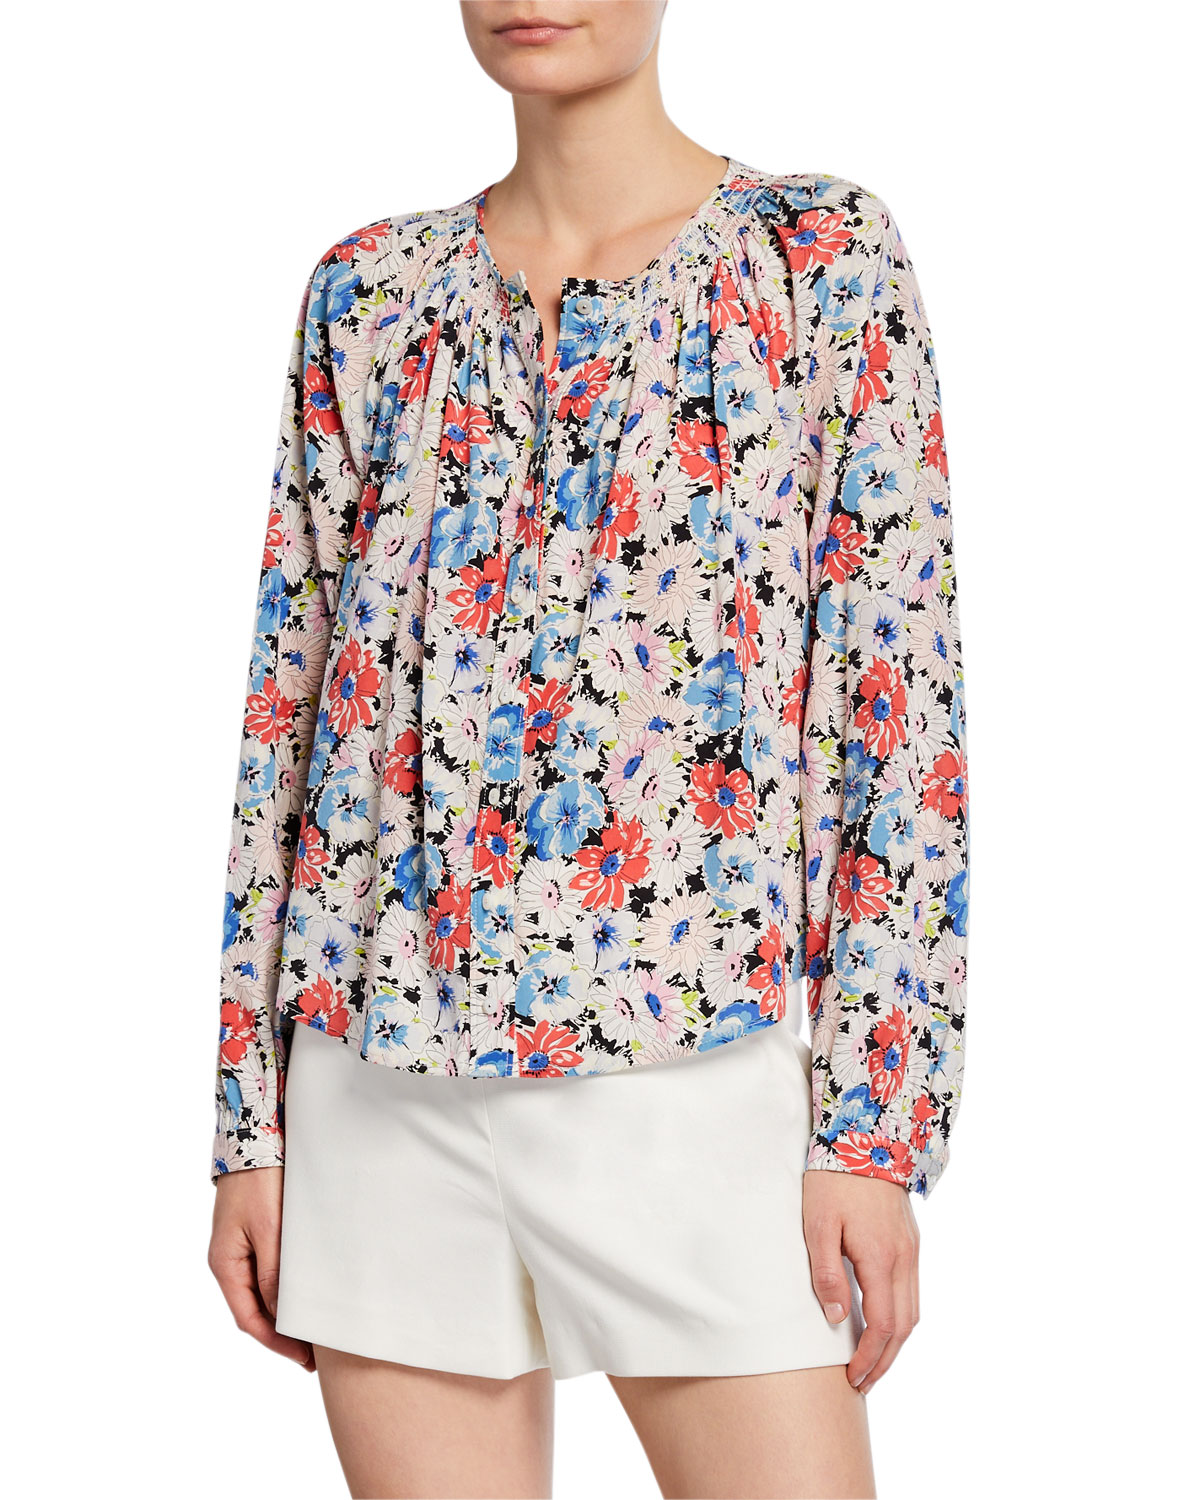 Veronica Beard Tops MADGE BUTTON-FRONT FLORAL BLOUSE